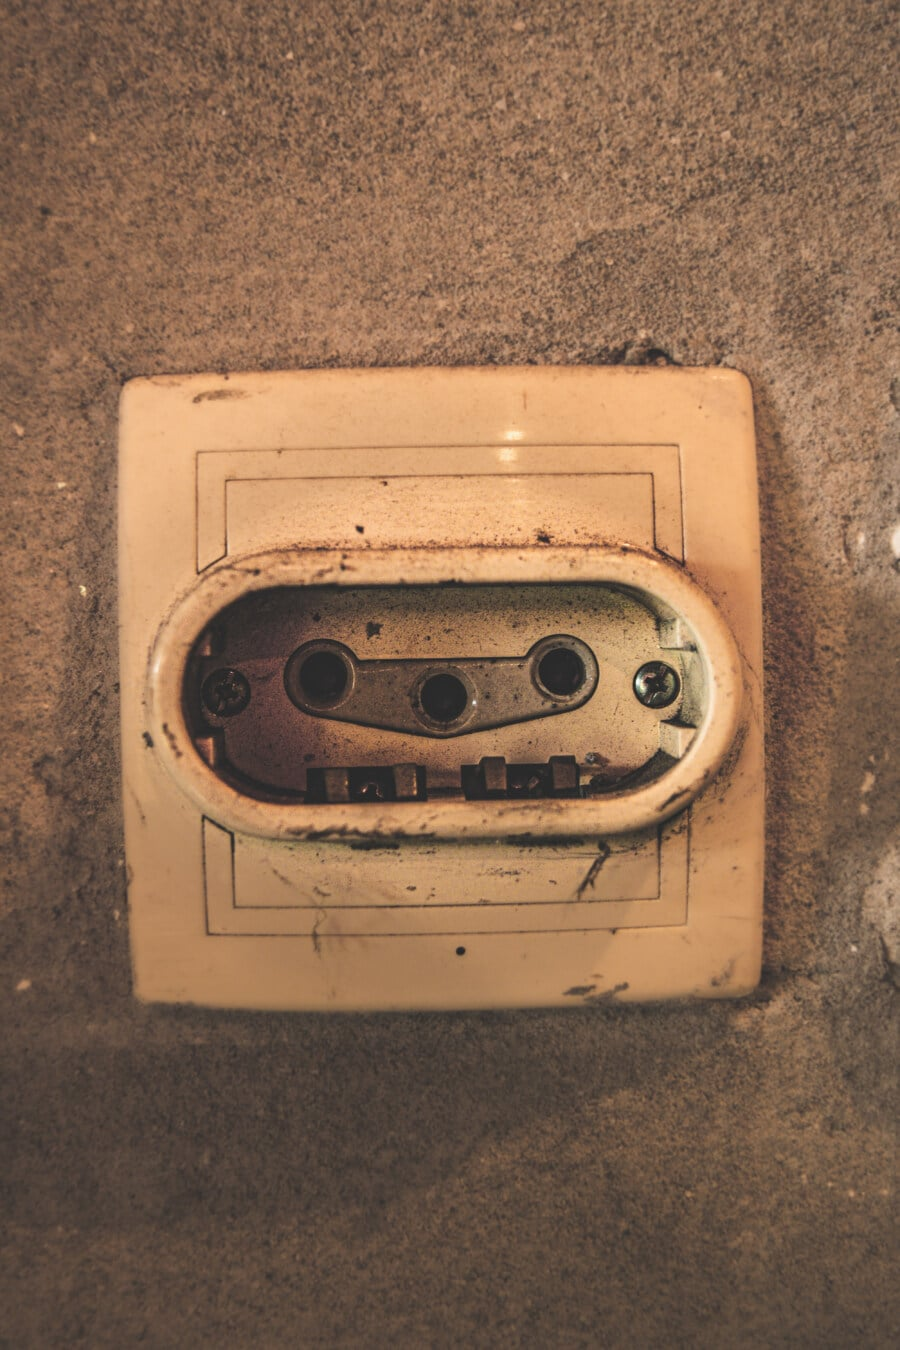 electricity, wall, connection, plastic, vintage, old, retro, dirty, analogue, art